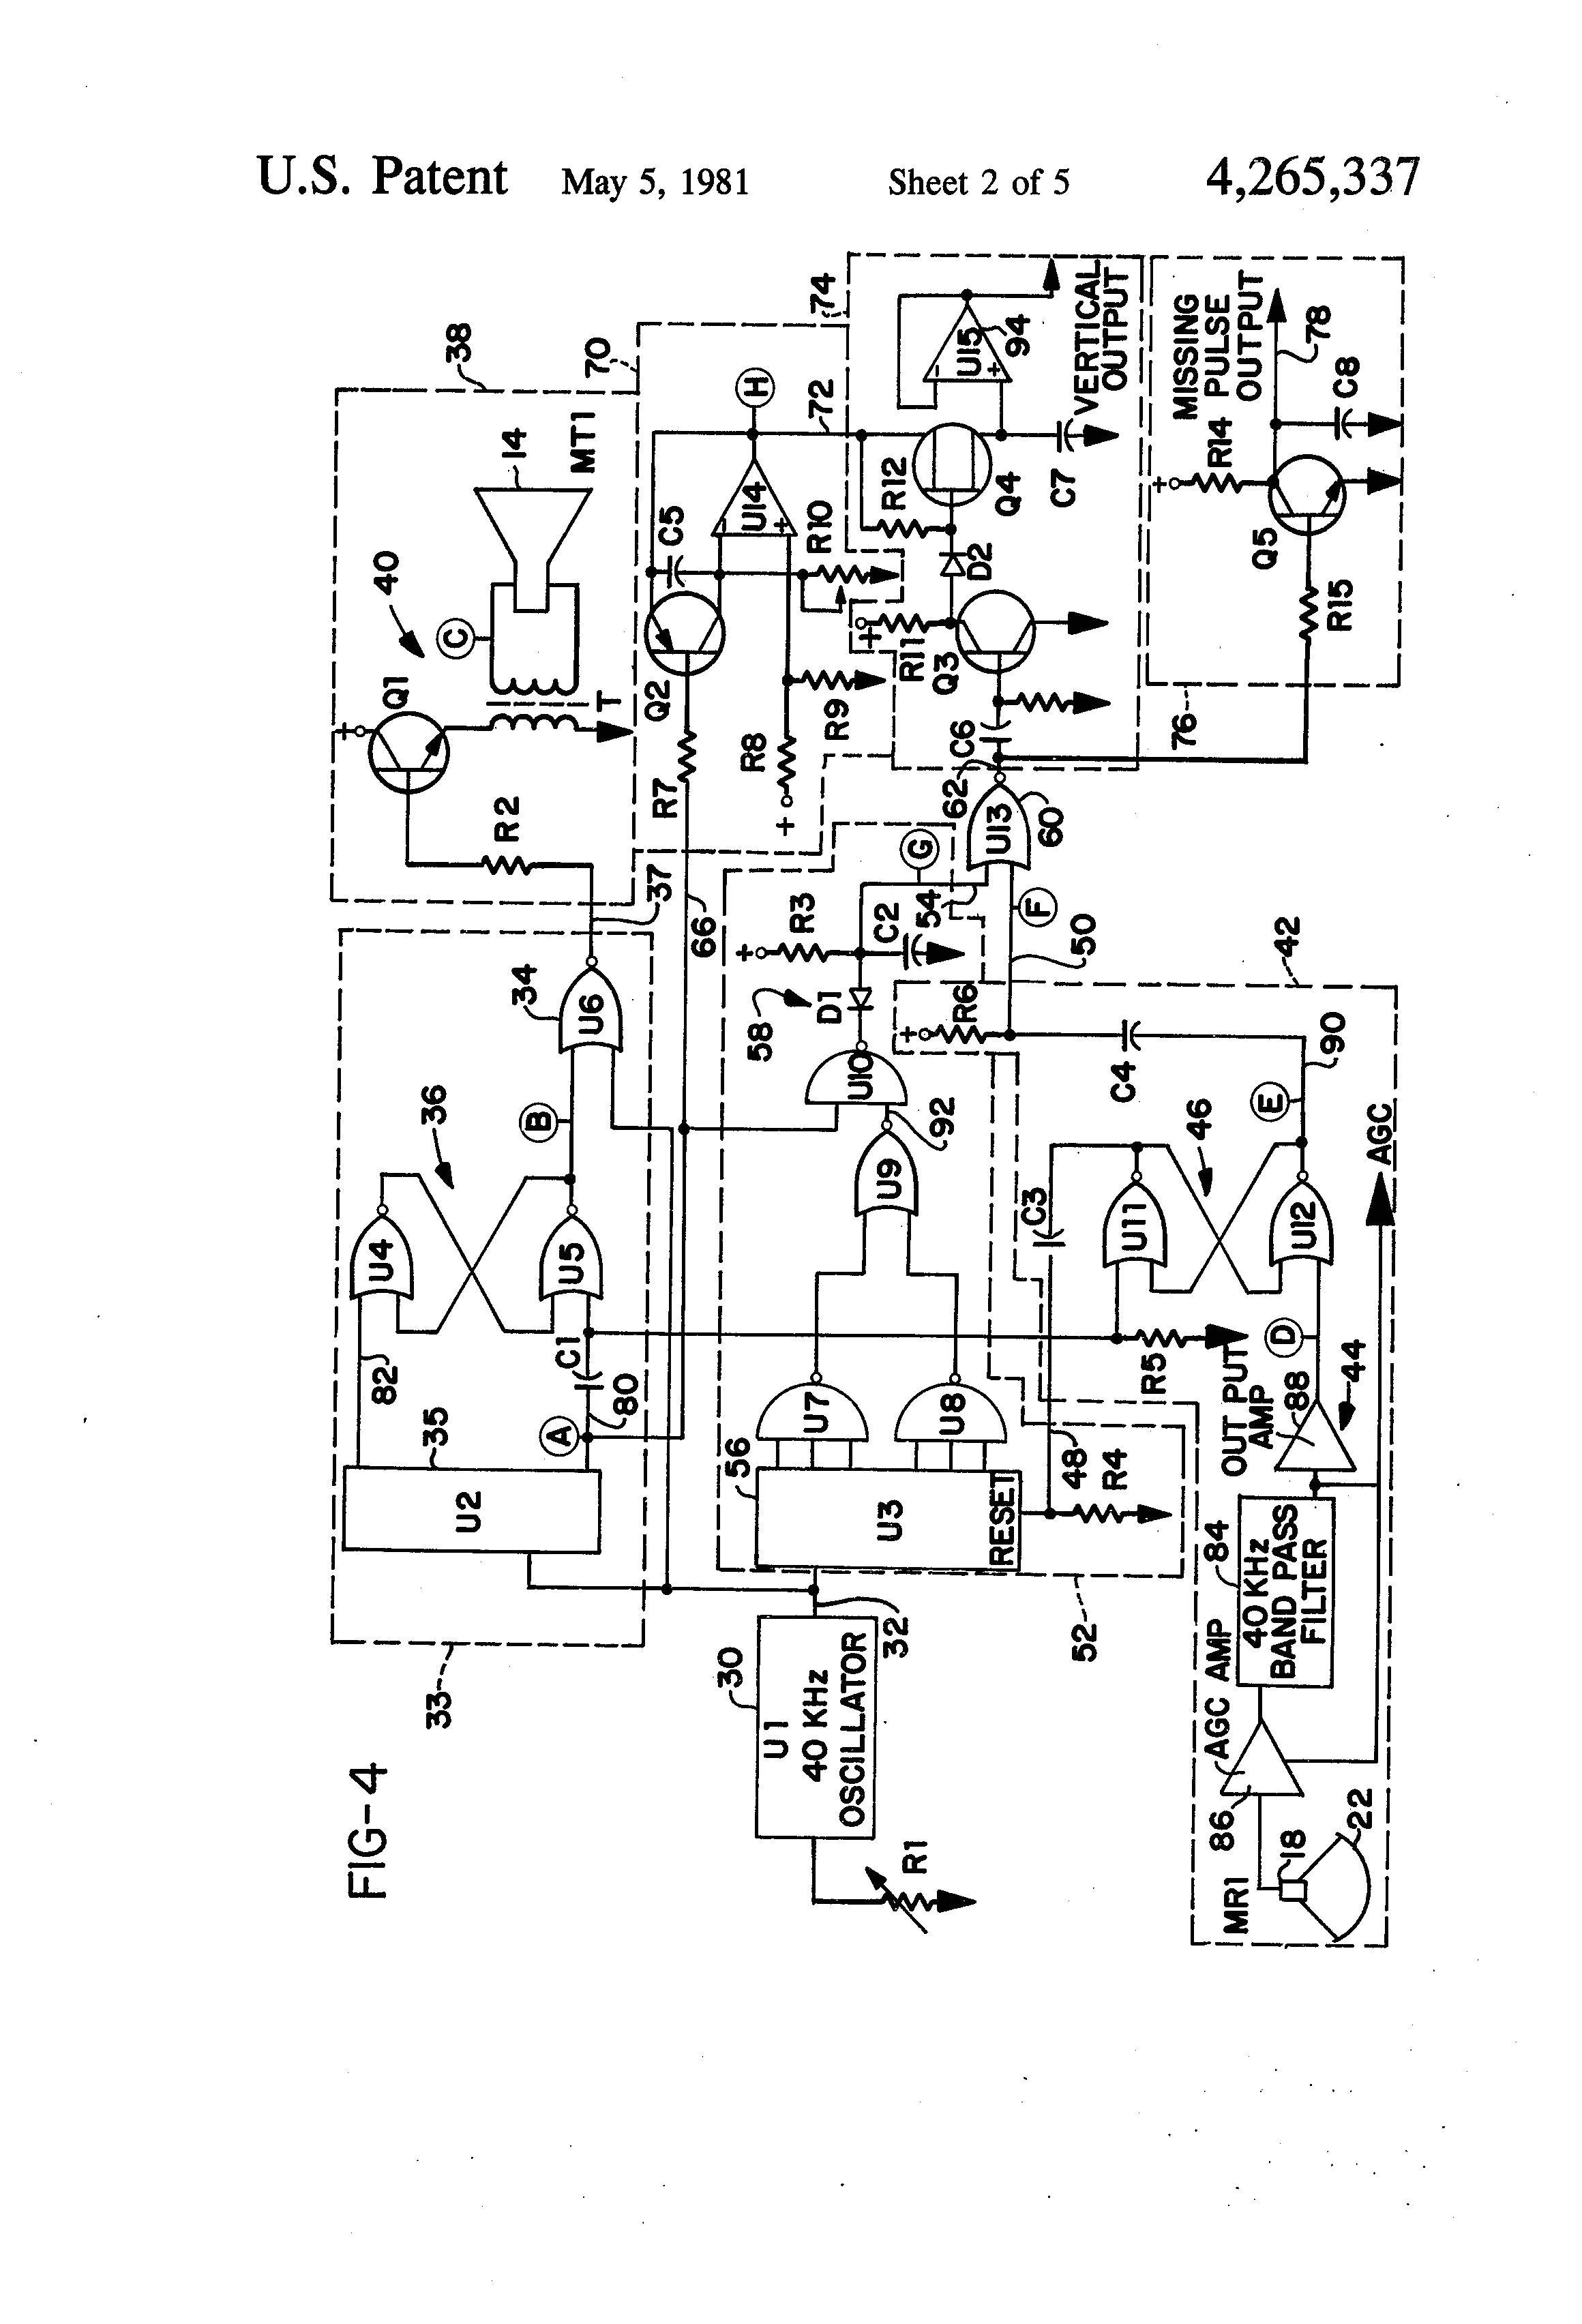 yale mpb040acn24c2748 wiring diagram wiring diagram show yale electrical wiring diagram wiring diagram option yale mpb040acn24c2748